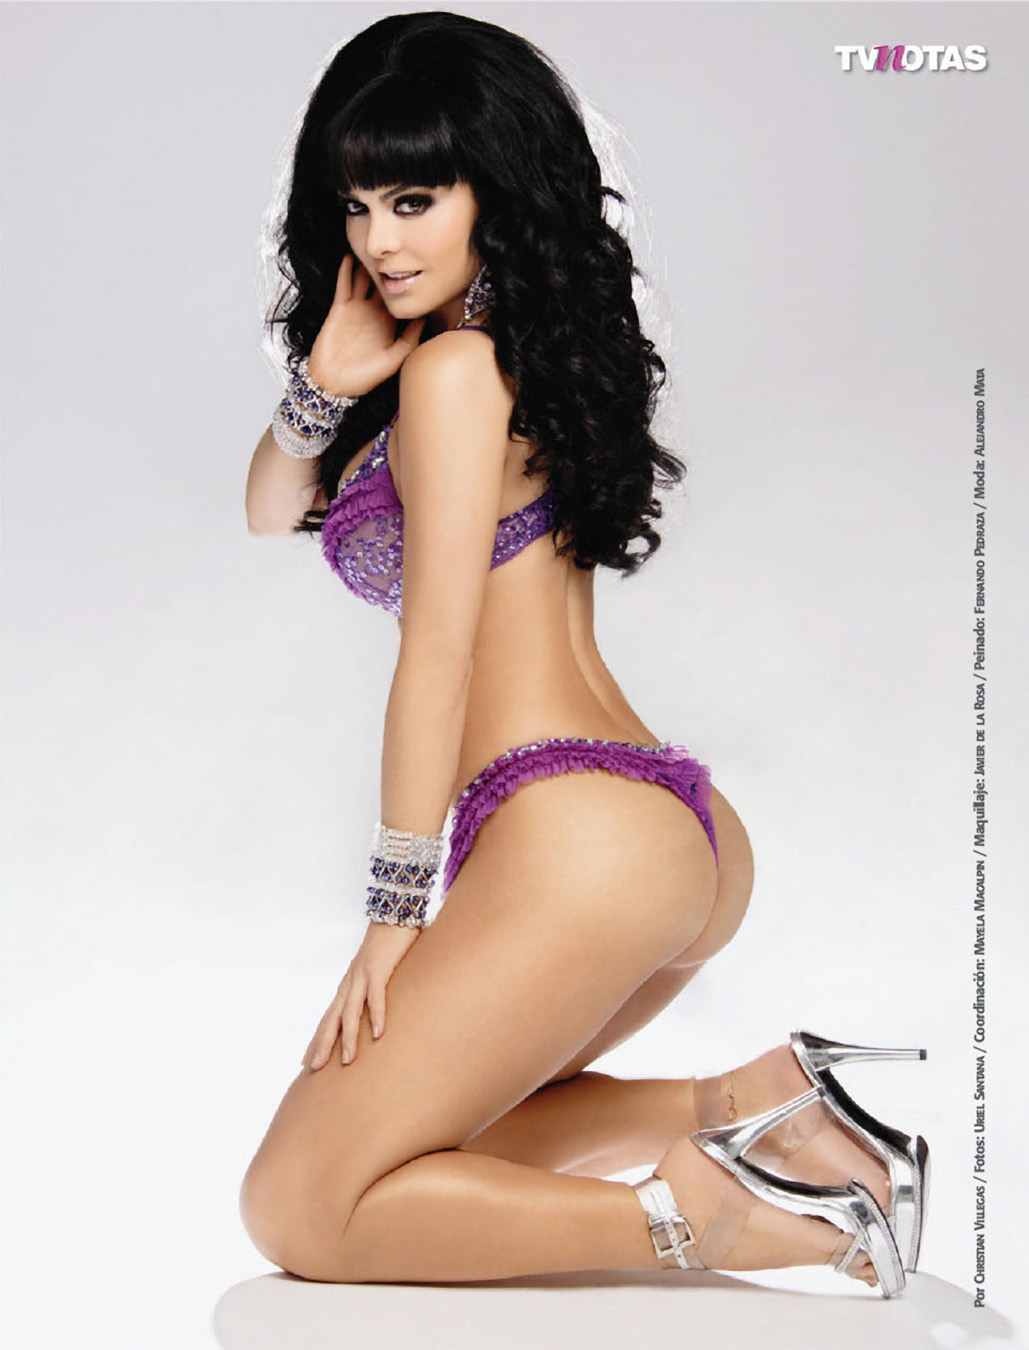 Maribel Guardia Revista TVNotas Enero 2011